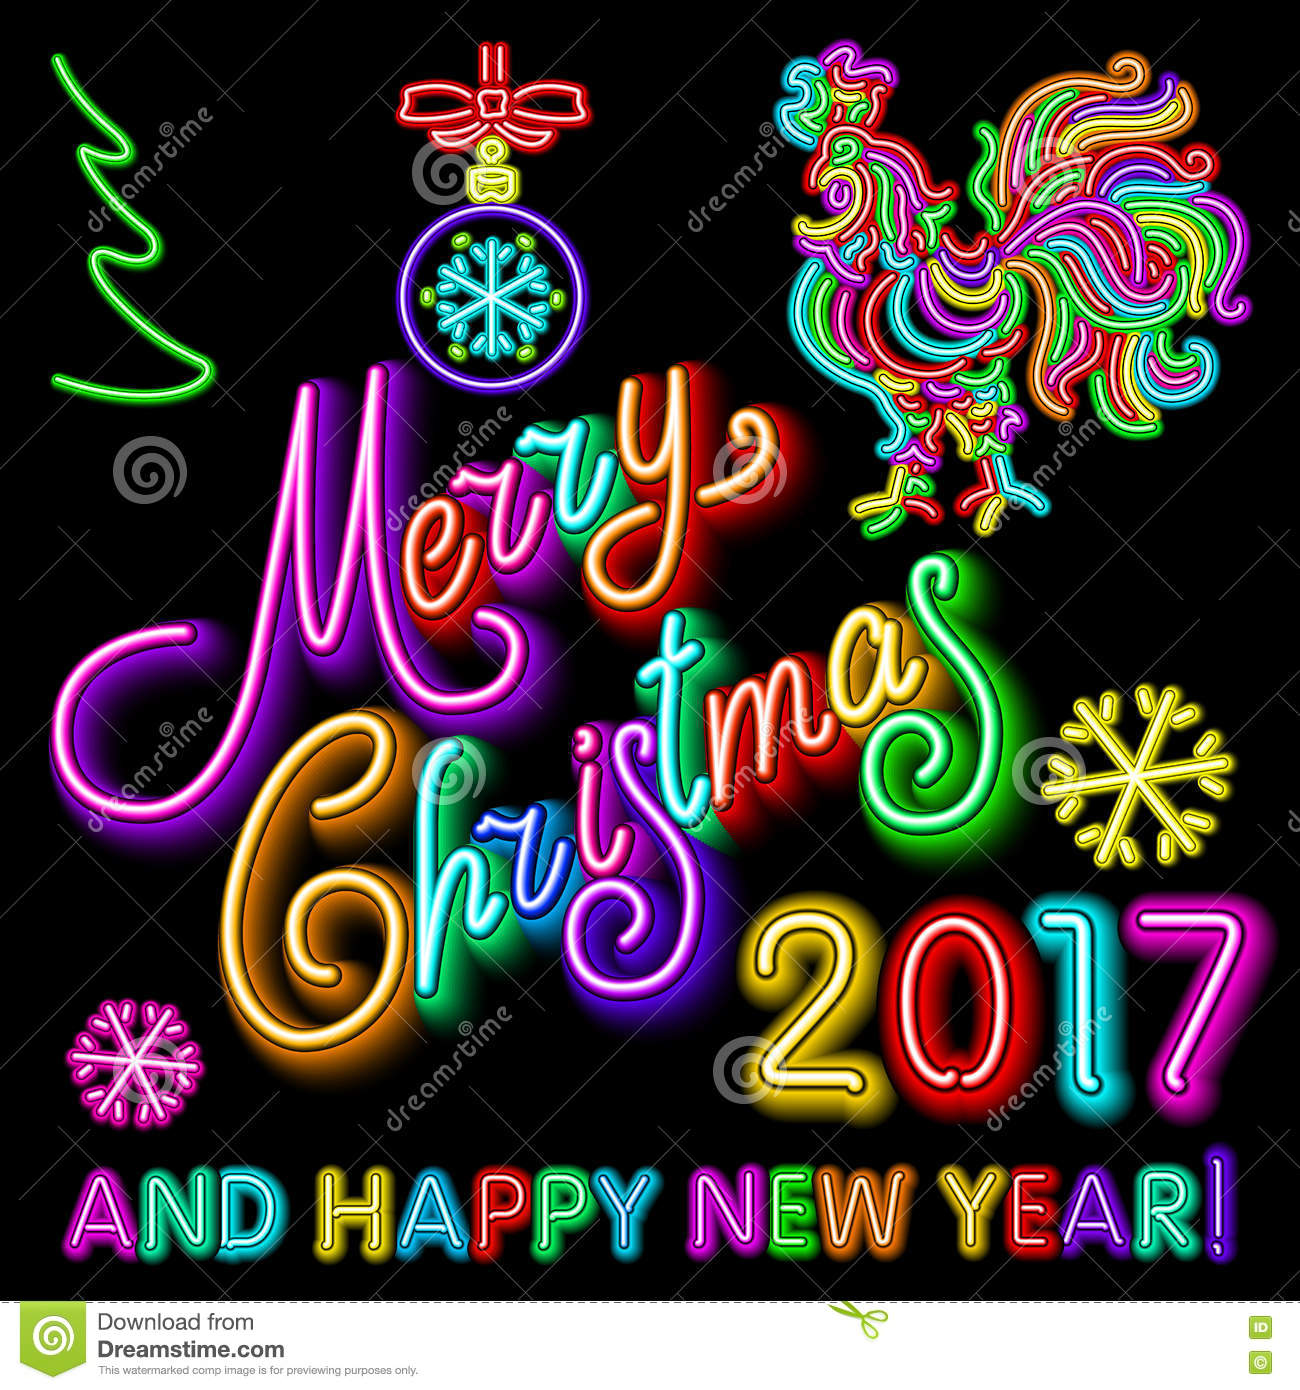 vector illustration green merry christmas and happy new year 2017 neon light color toy rooster snow art